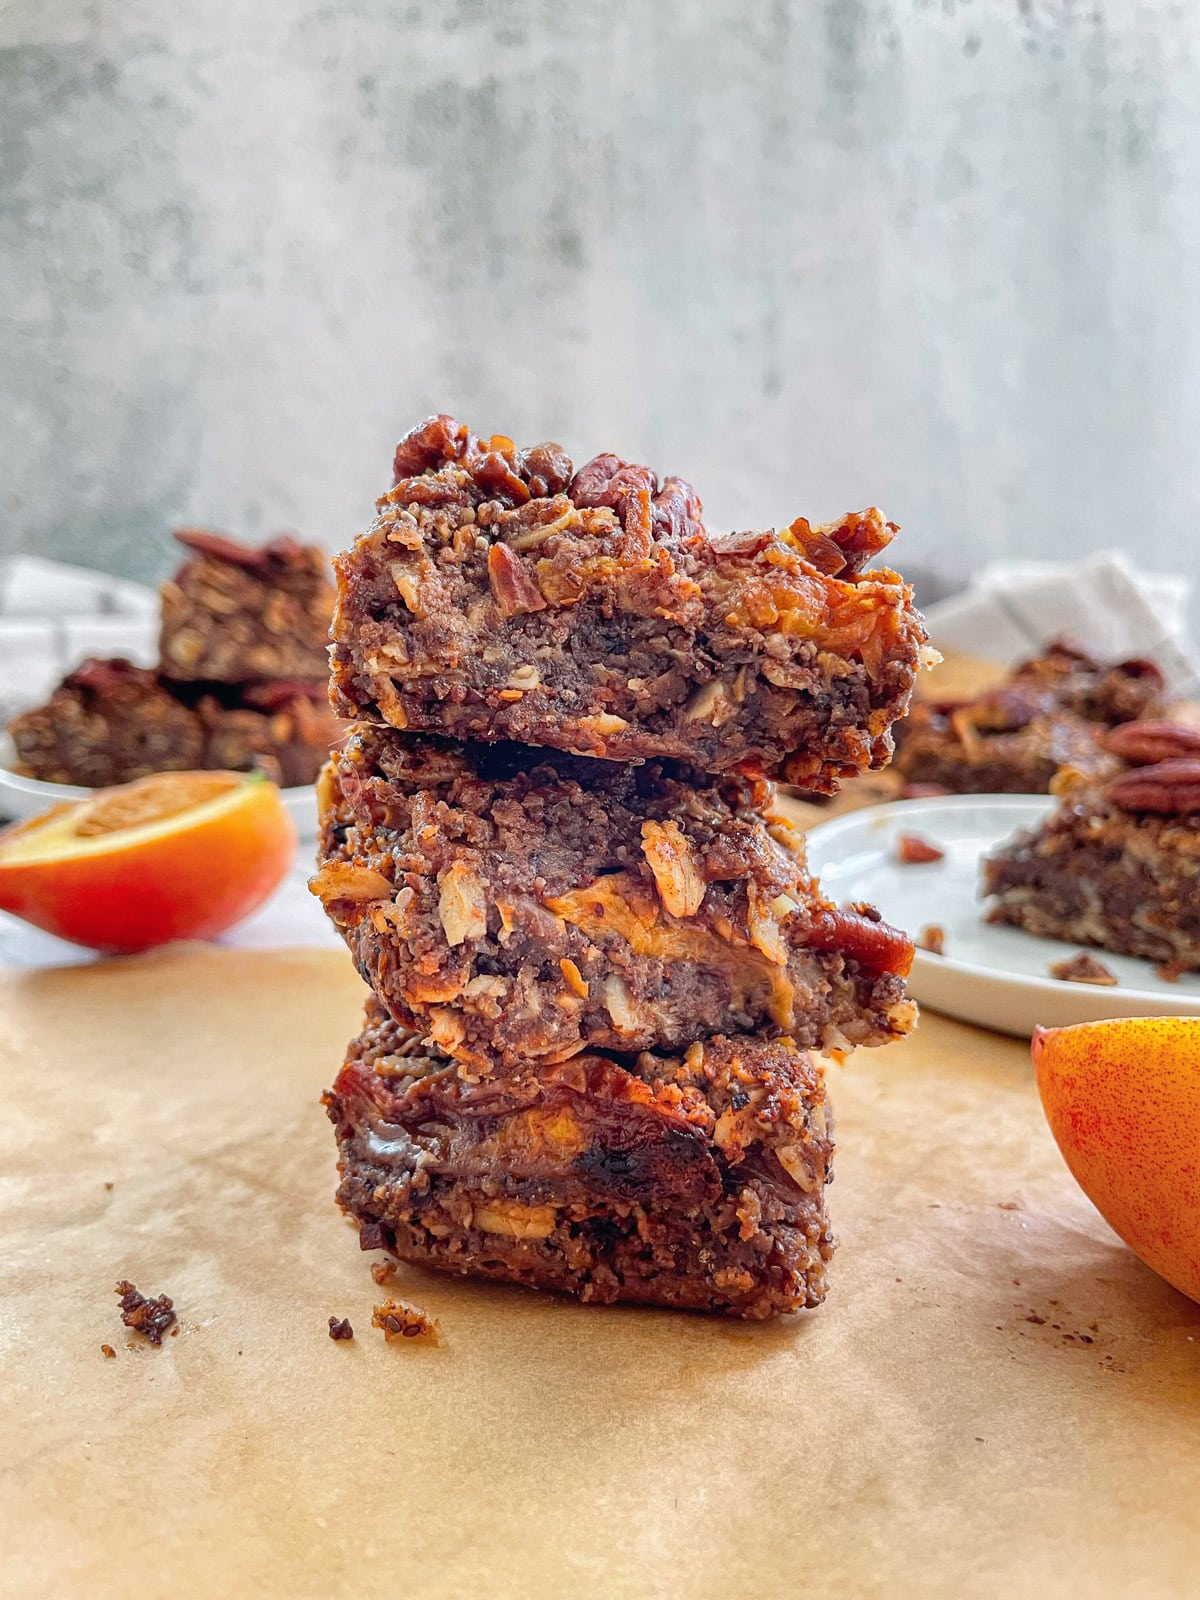 3 Vegan Peach Crumble Bars with Candied Pecans stacked with other bars blurred in the background